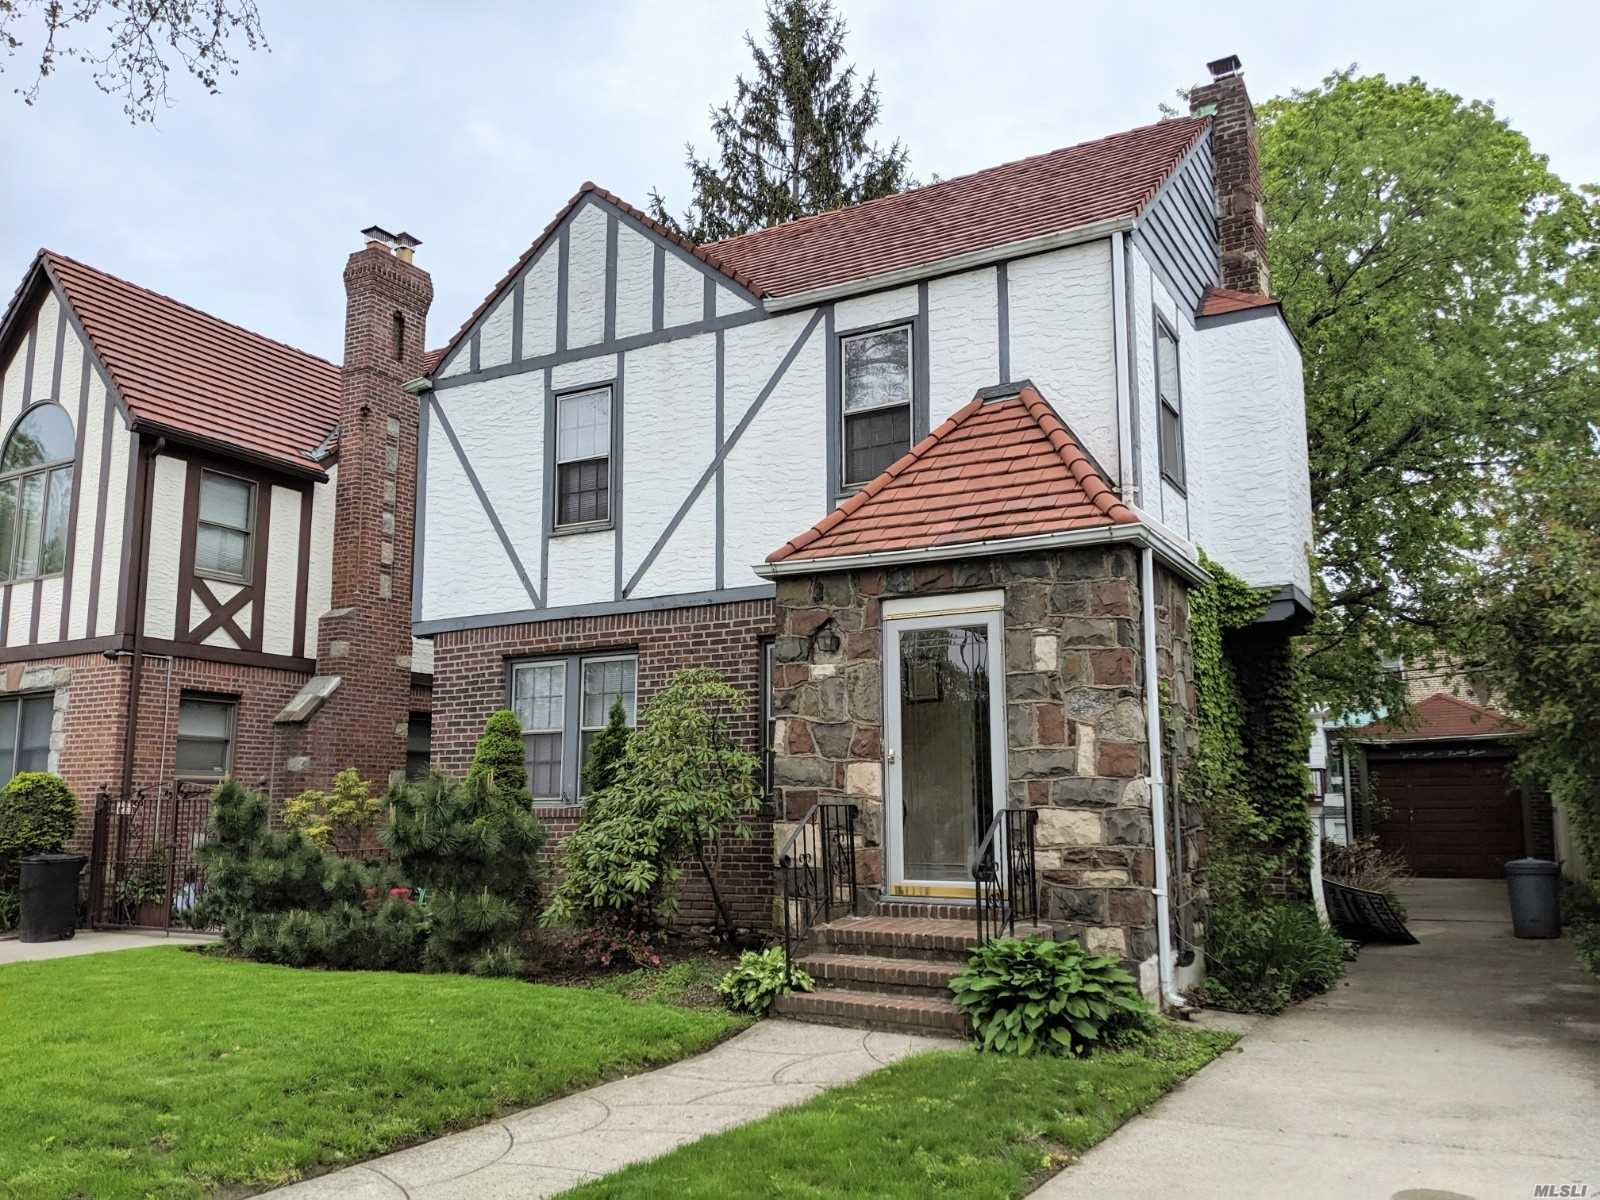 Beautiful Detached 1-family Tudor in the most desirable area of Auburndale. Hardwood floor. Transportation Q27, Q31. Close to park, shopping and school. School District 26 - PS 162. JHS 216, Francis Lewis High School.